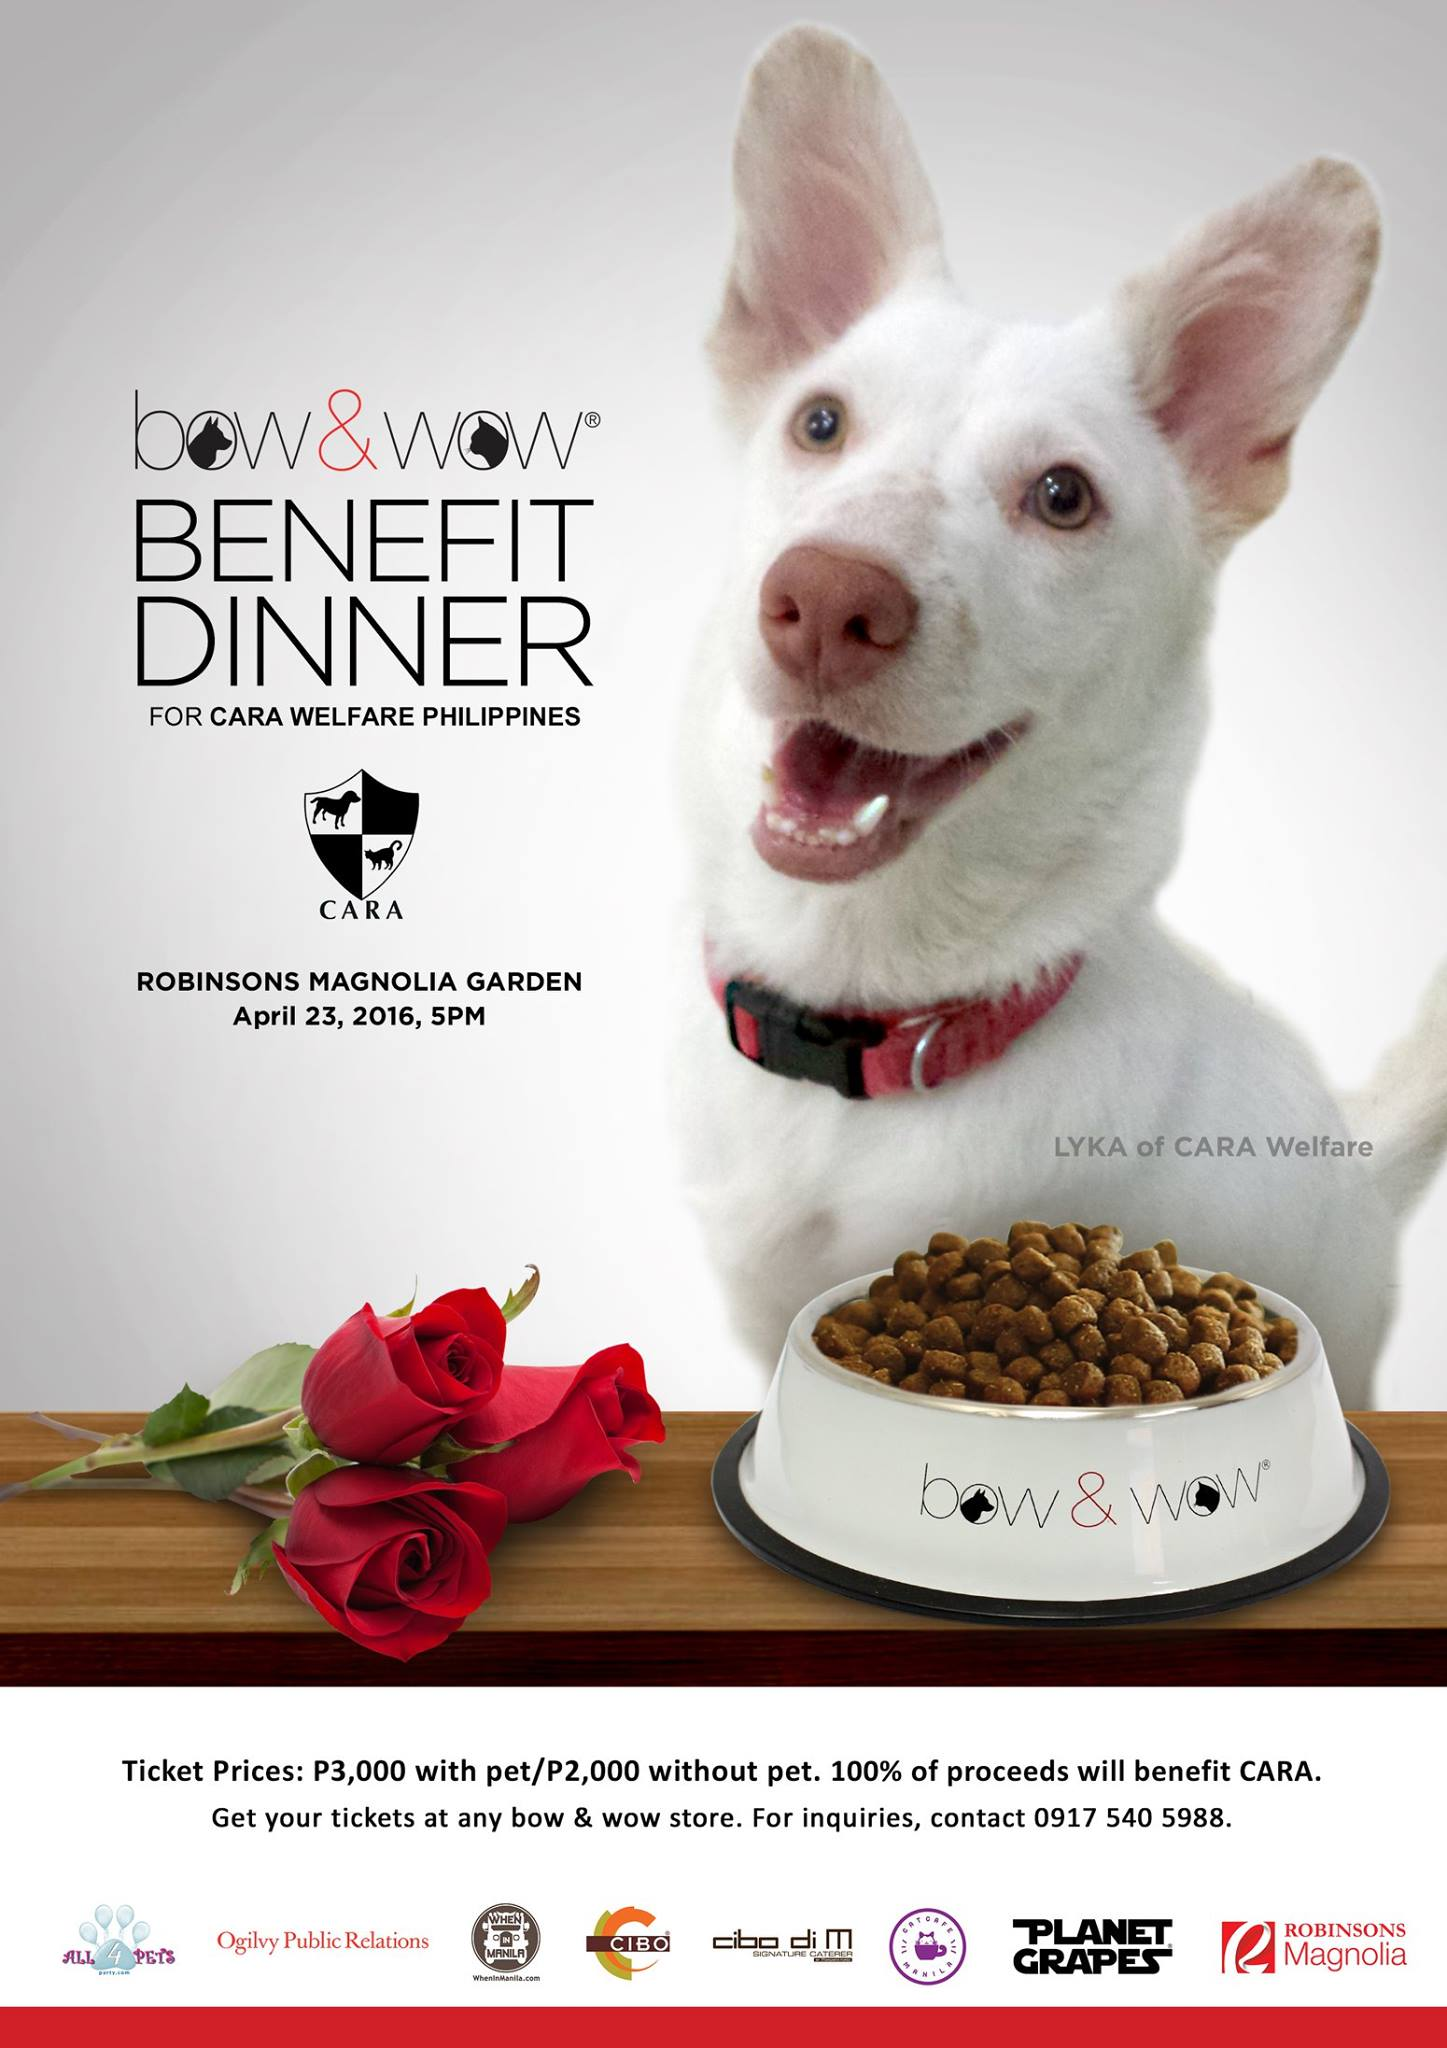 Bow & Wow Benefit Dinner at Robinsons Magnolia Garden